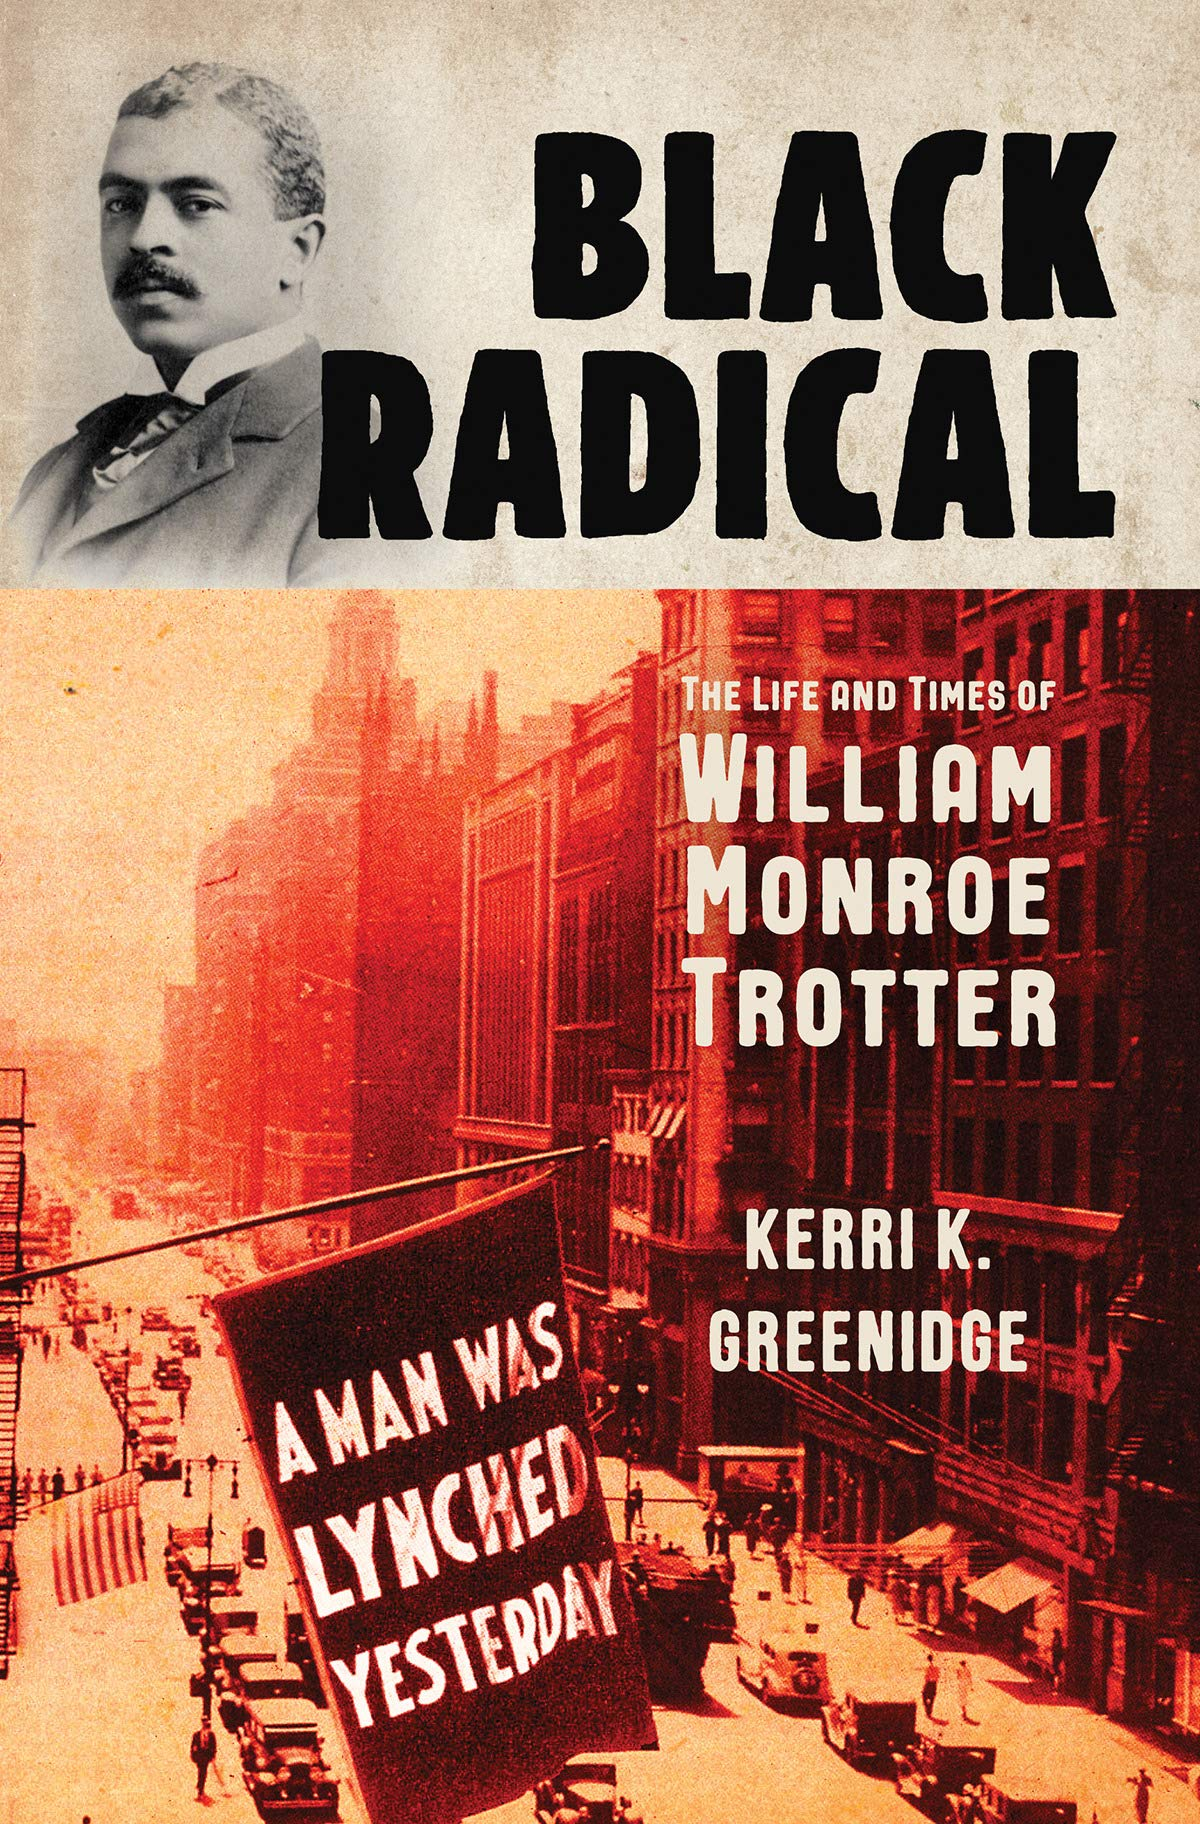 Black Radical : The Life and Times of William Monroe Trotter by Kerri K. Greenidge